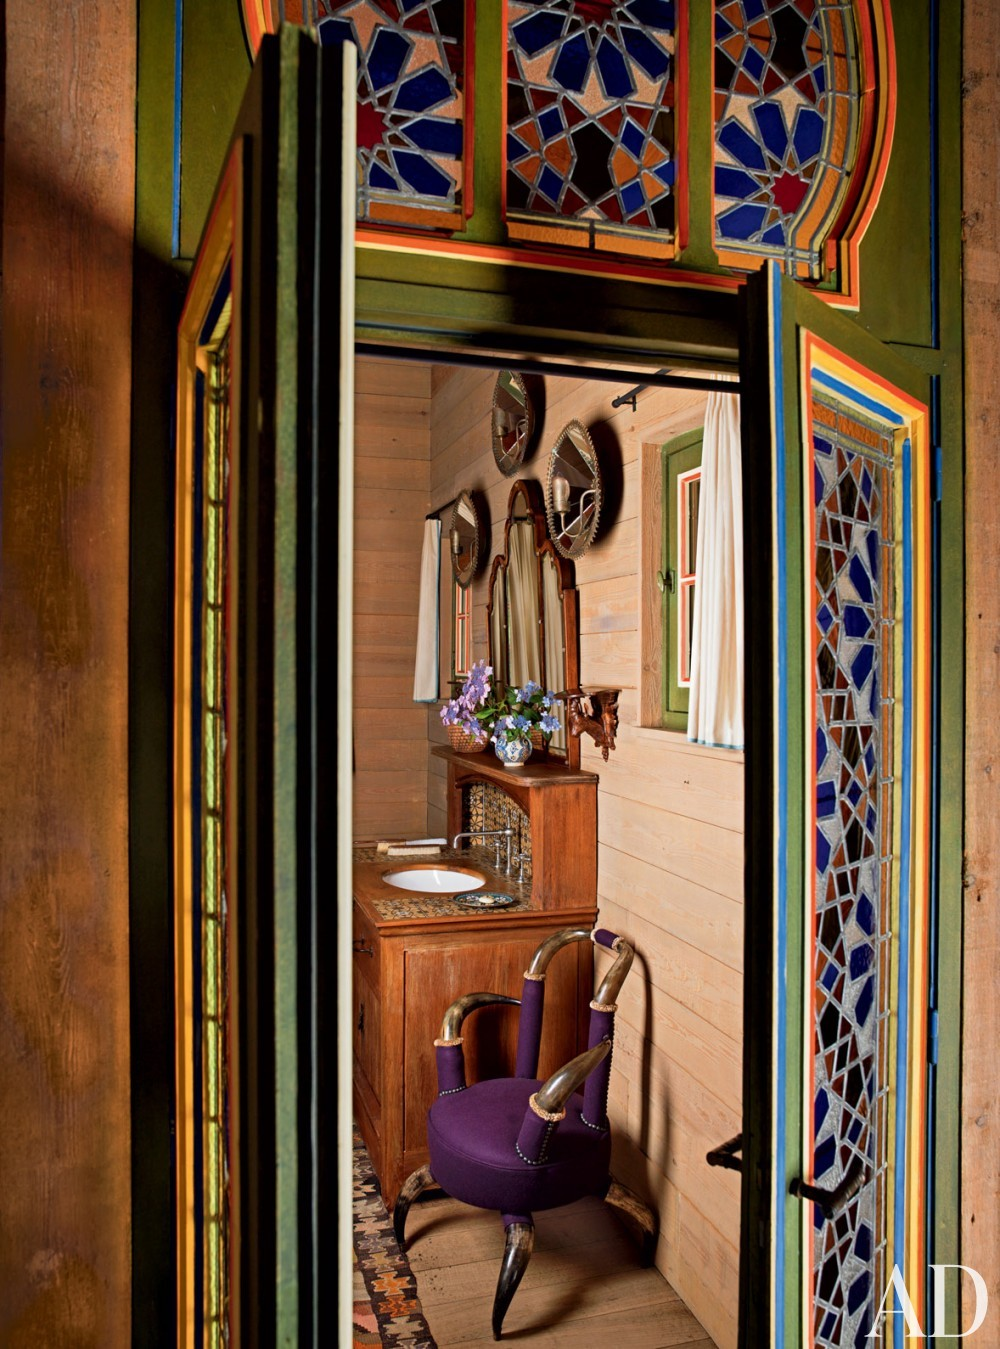 Exotic Bathroom by Jacques Grange and Jacques Grange in Normandy, France